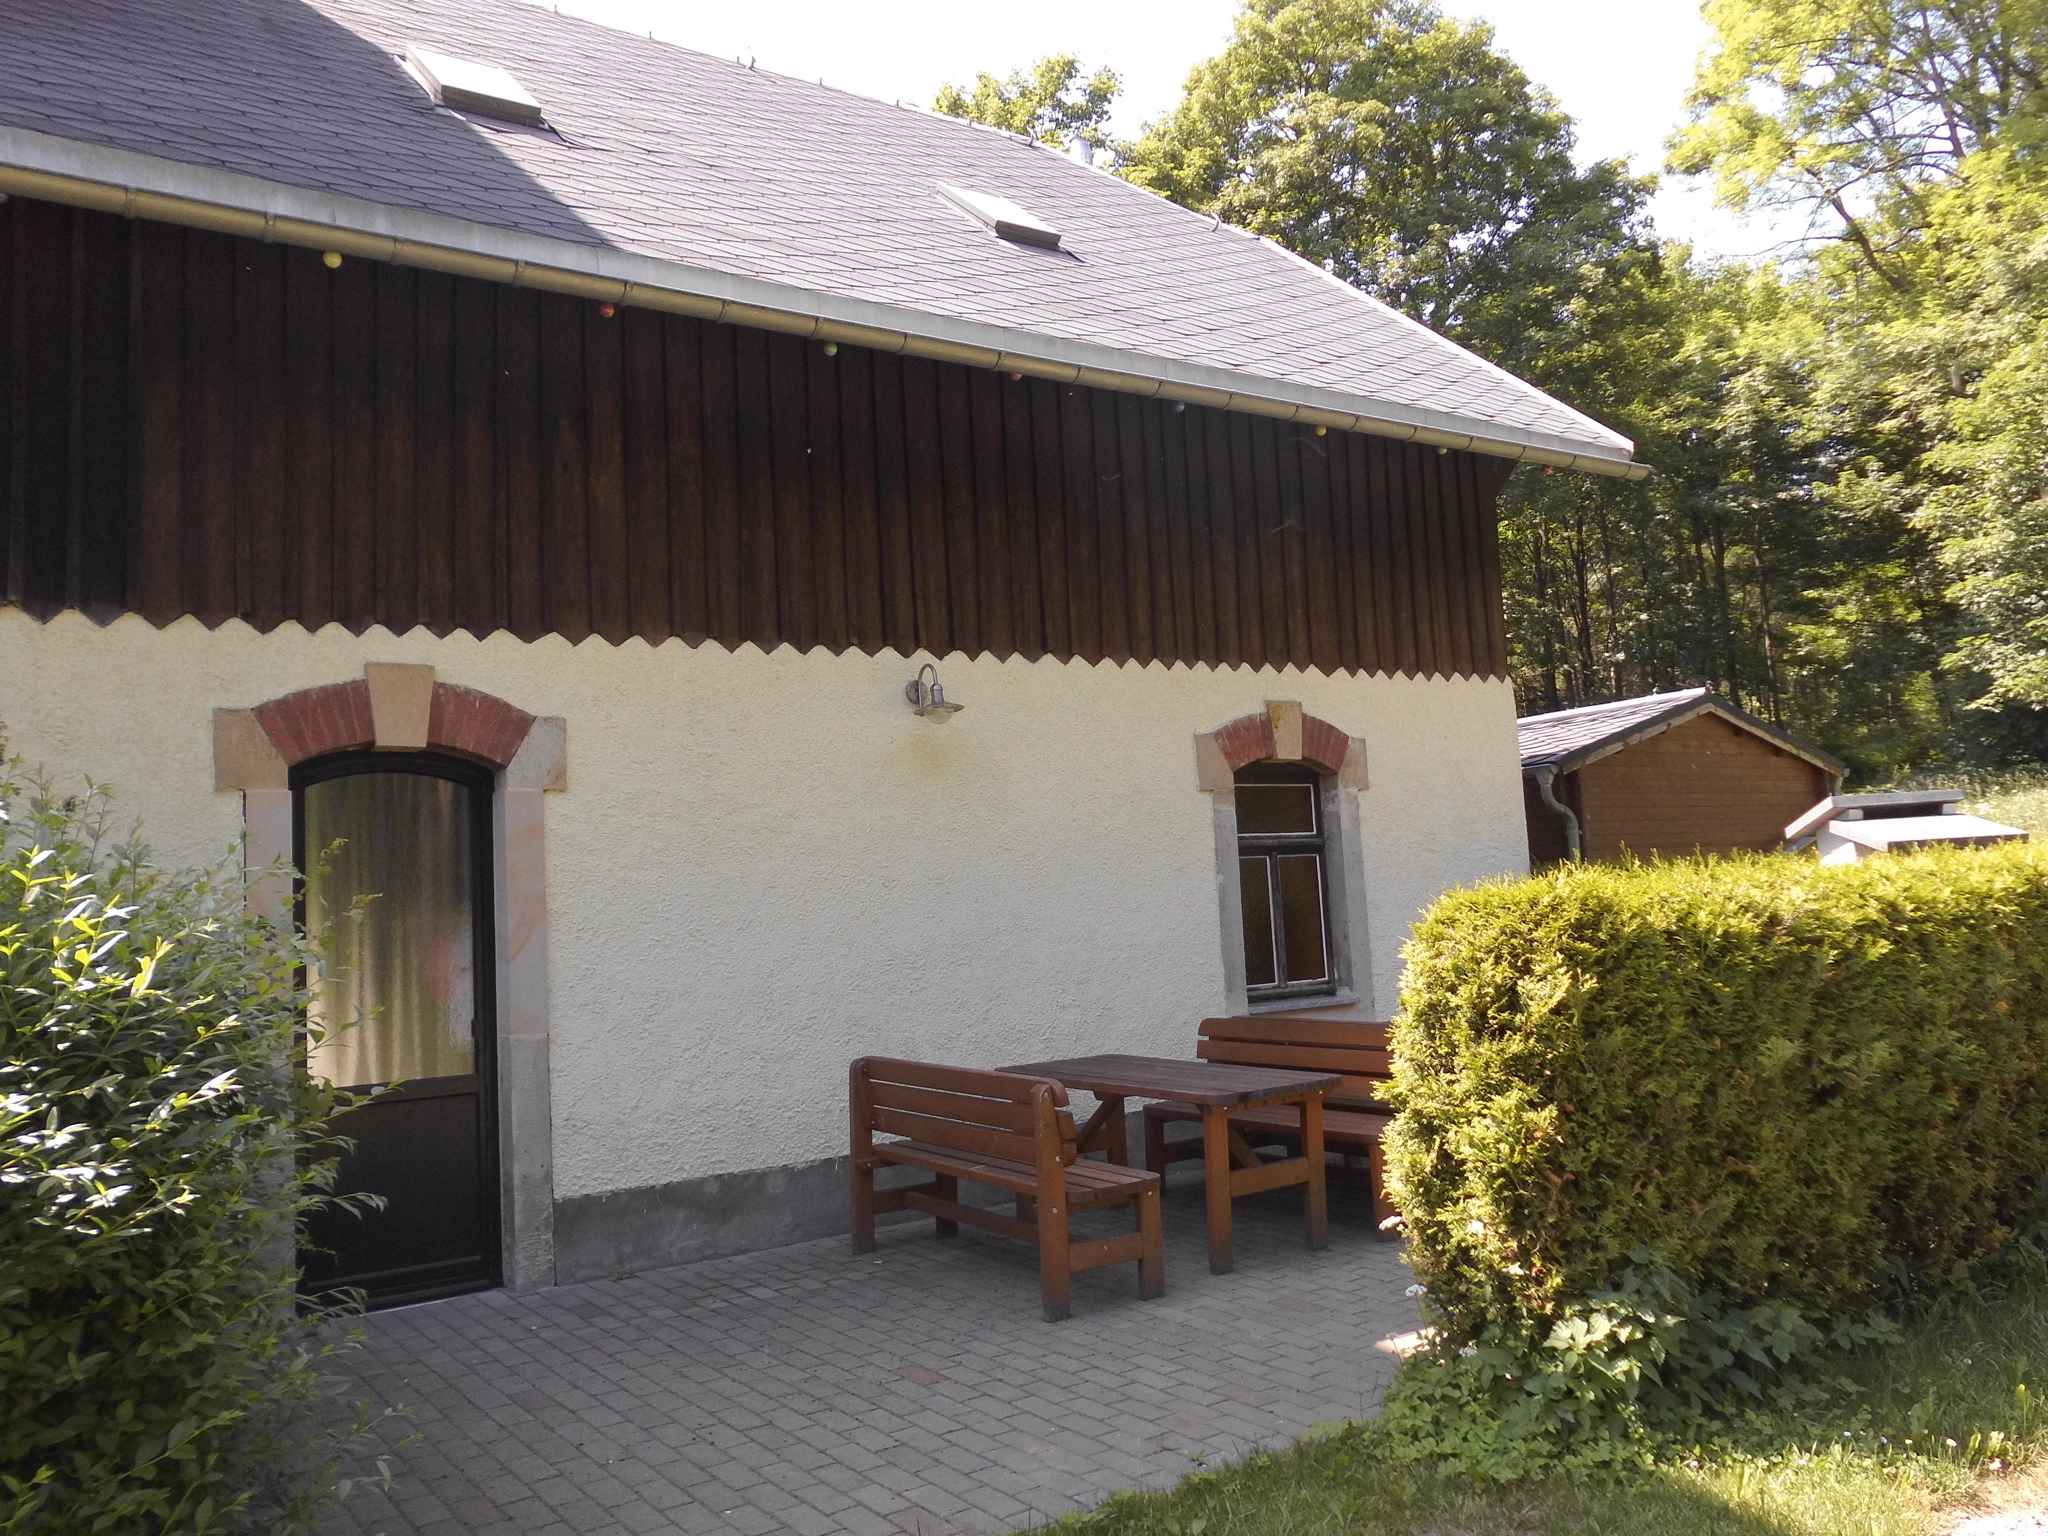 Holiday apartment in ruhiger Waldrandlage (322517), Sayda, The Ore Mountains, Saxony, Germany, picture 3